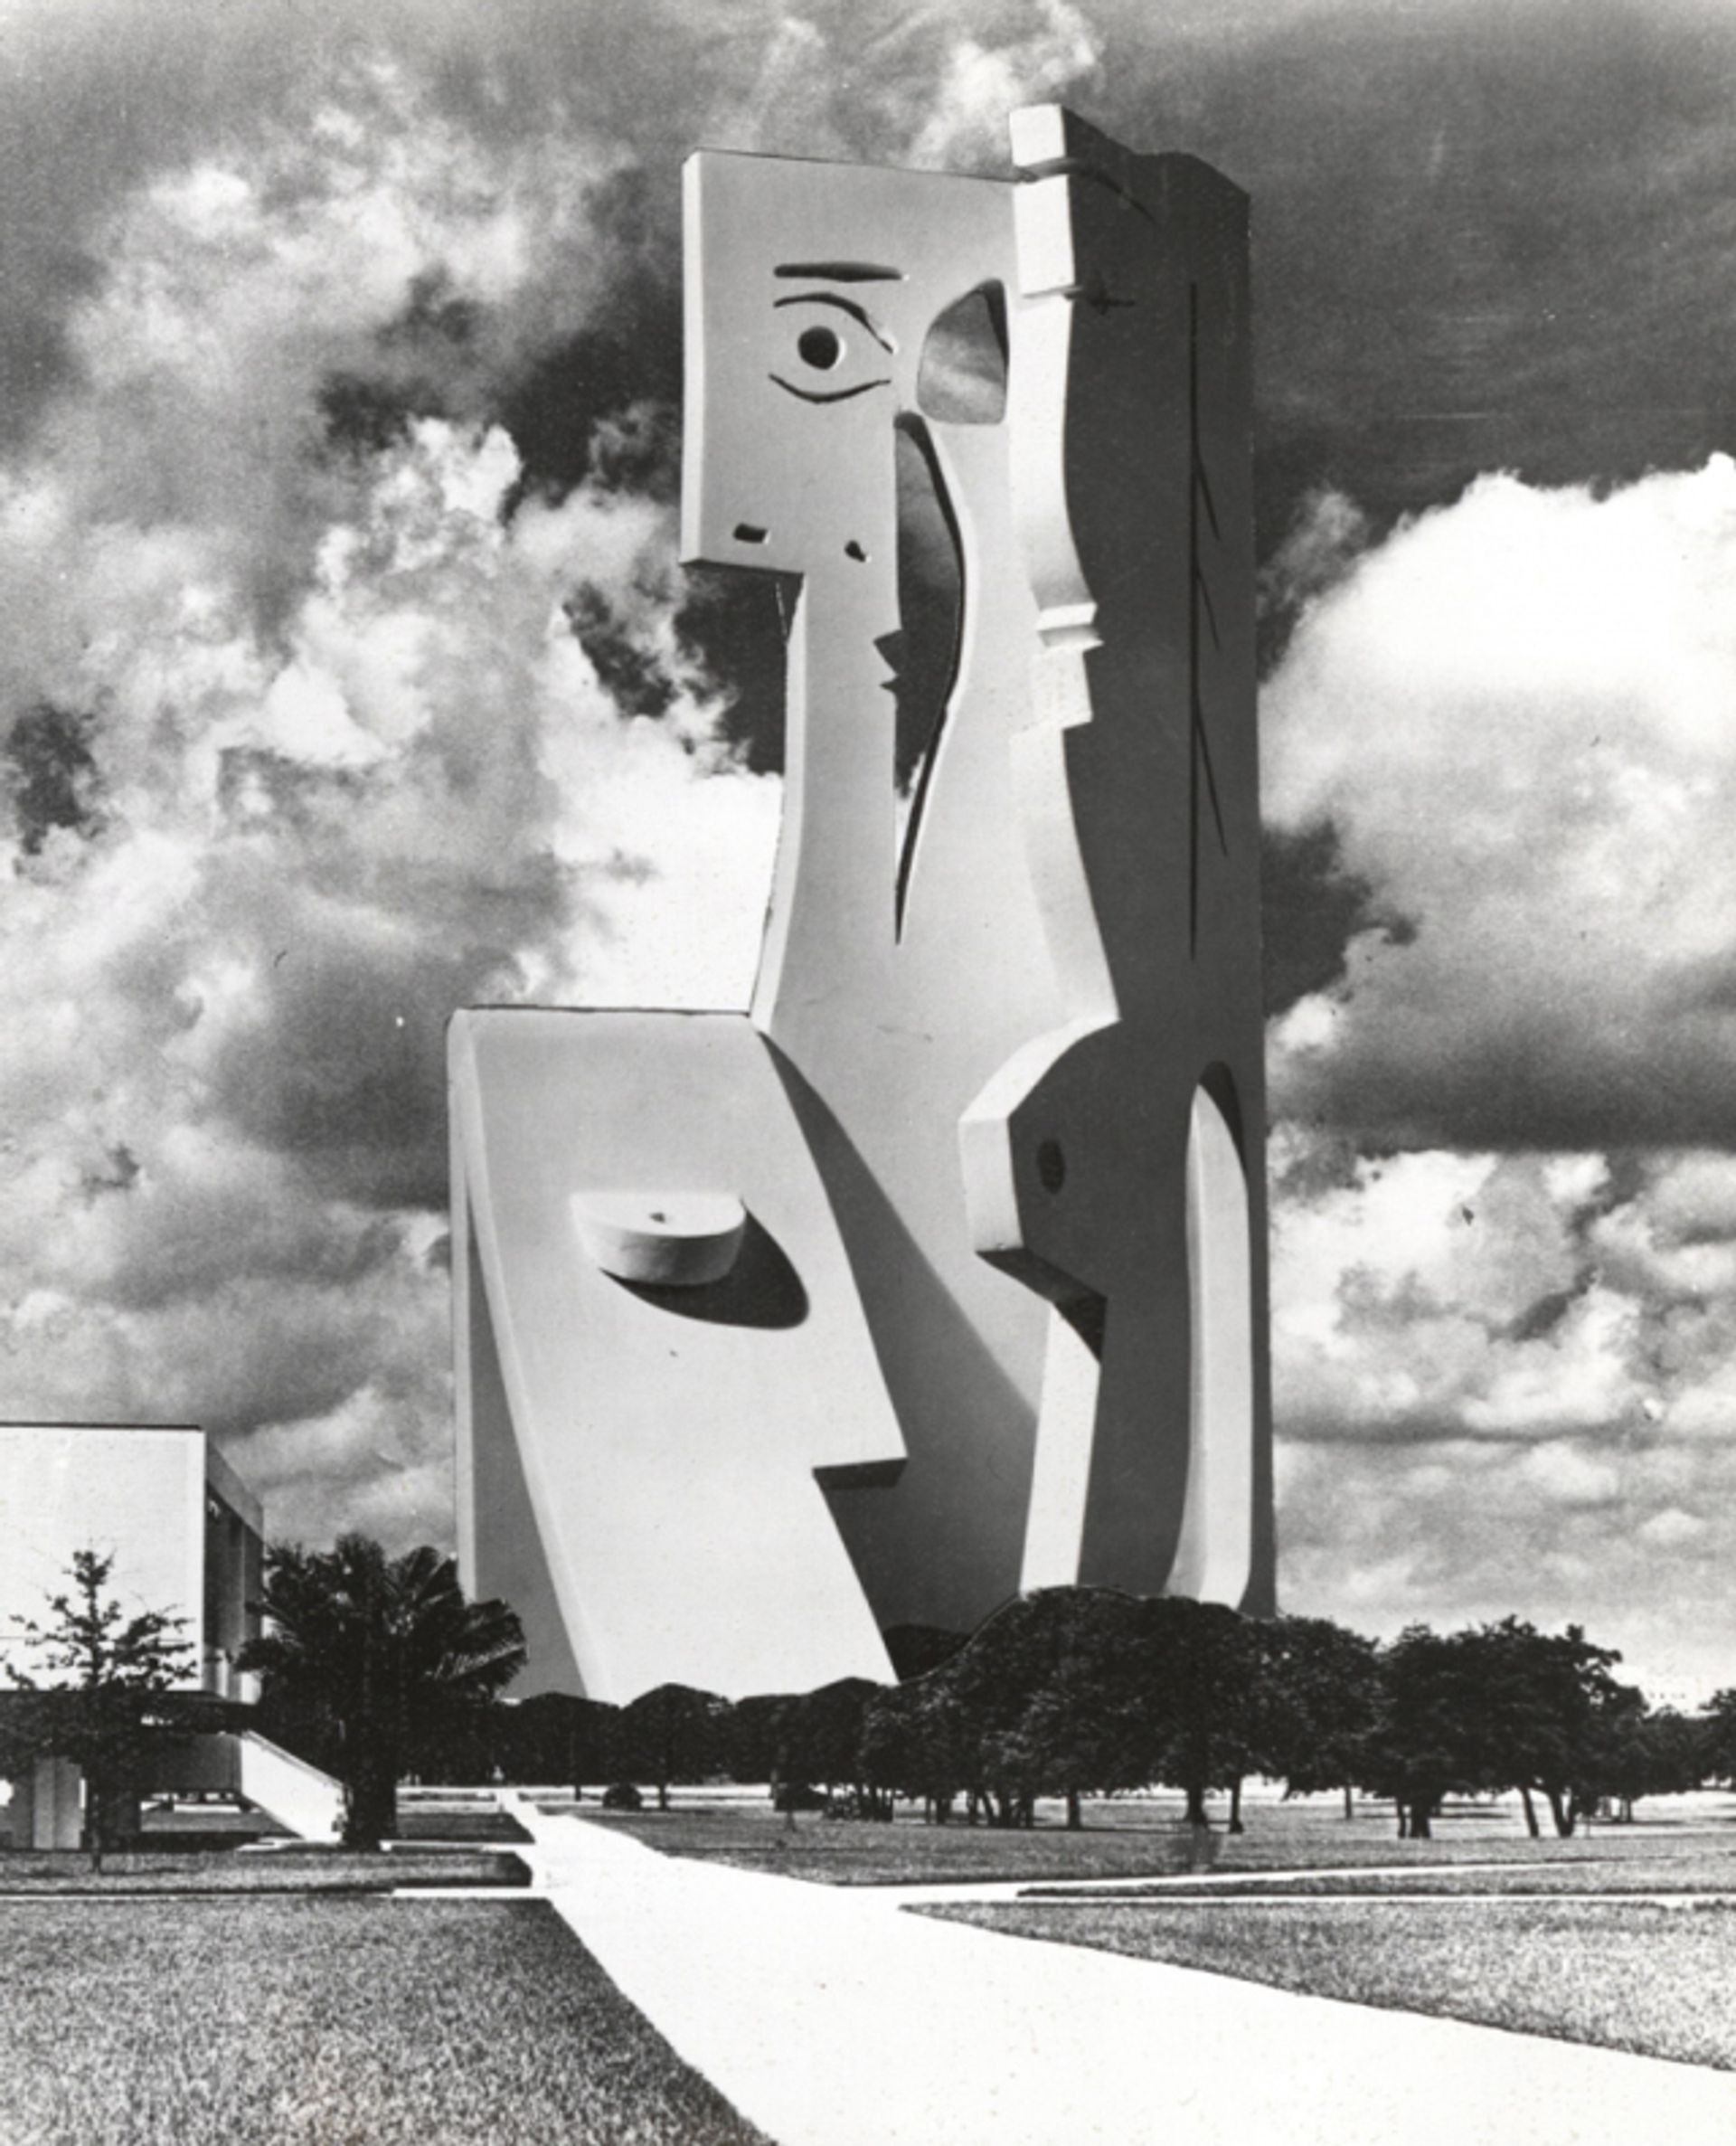 Photomontage of design for Bust of a Woman at the USF campus made by Picasso's collaborator Carl Nesjar in 1971 USF Center for Virtualization and Applied Spatial Technologies/ Advanced Visualization Center